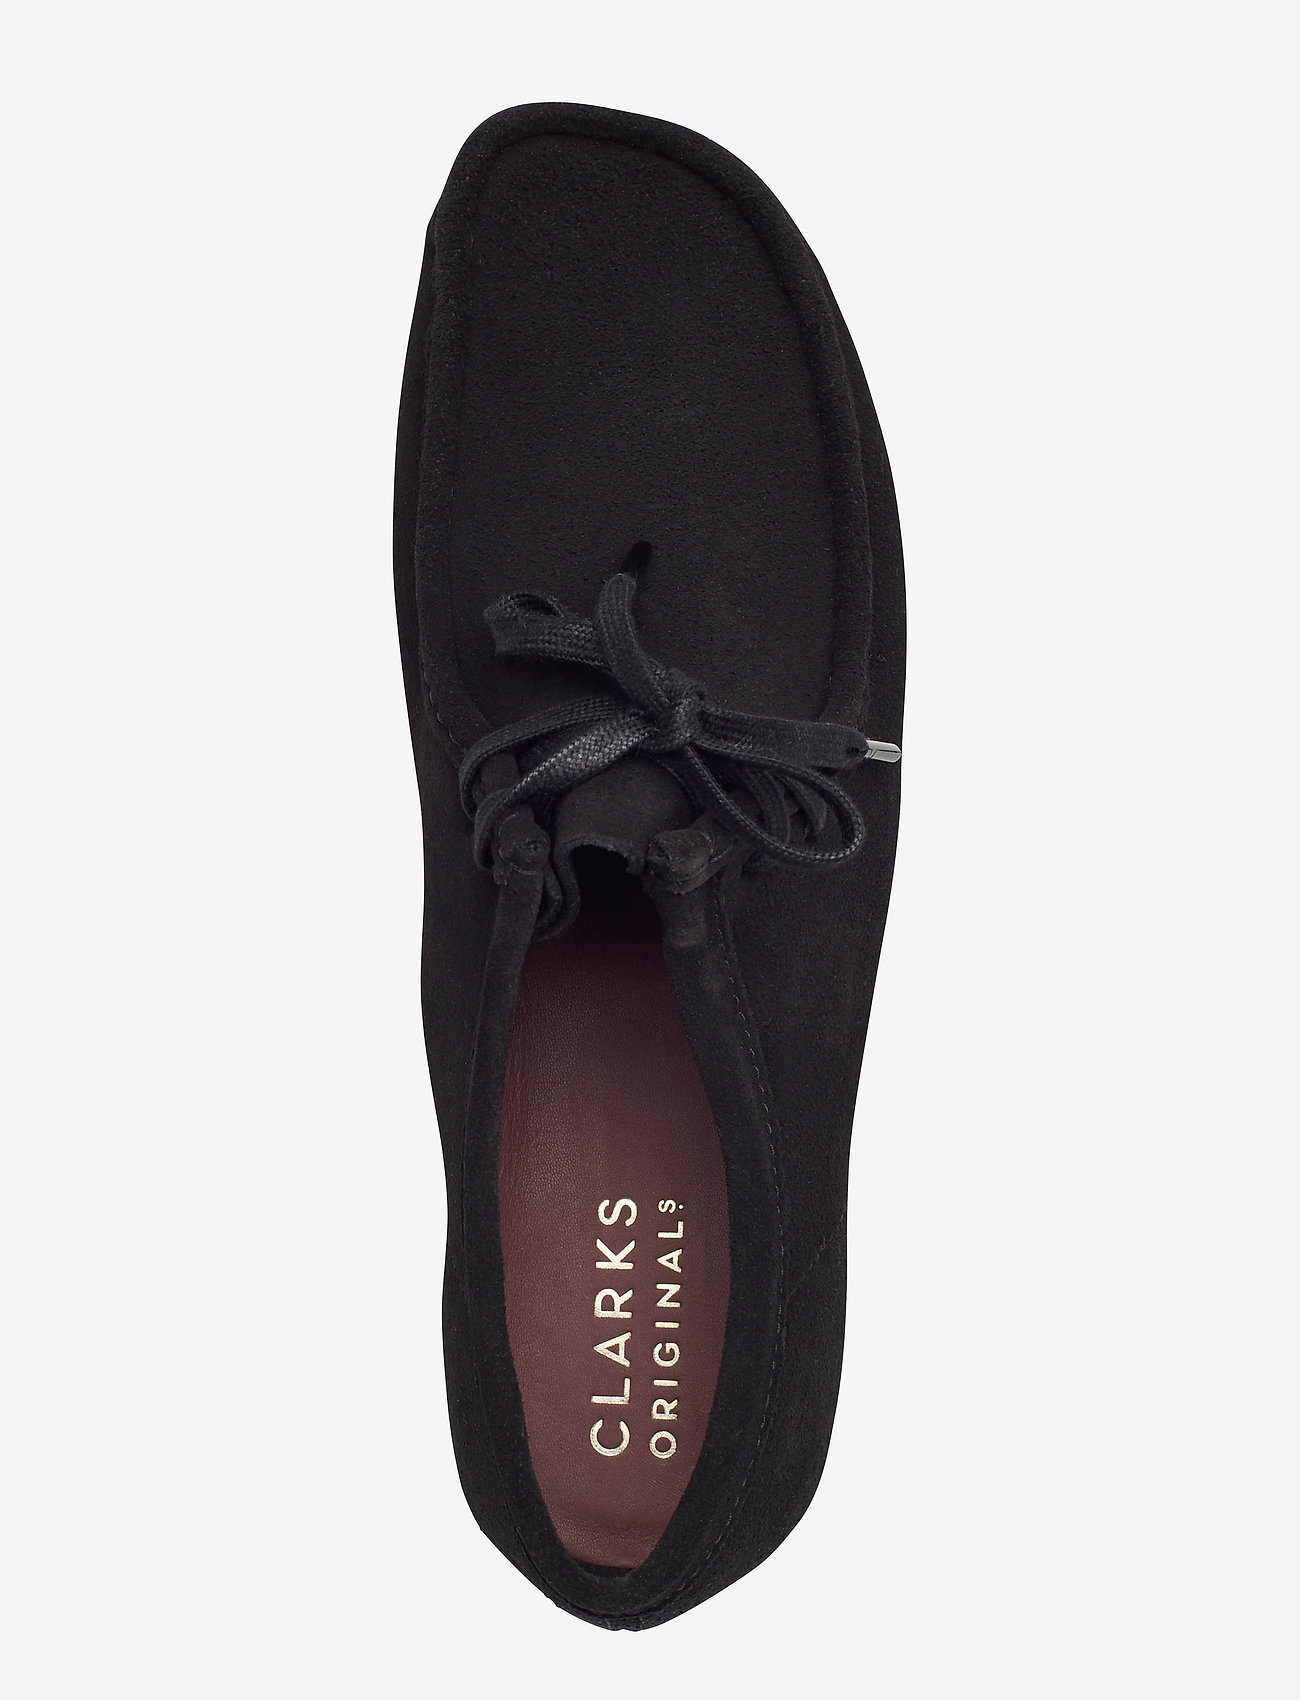 Clarks Originals - Wallabee - snörskor - black sde - 3